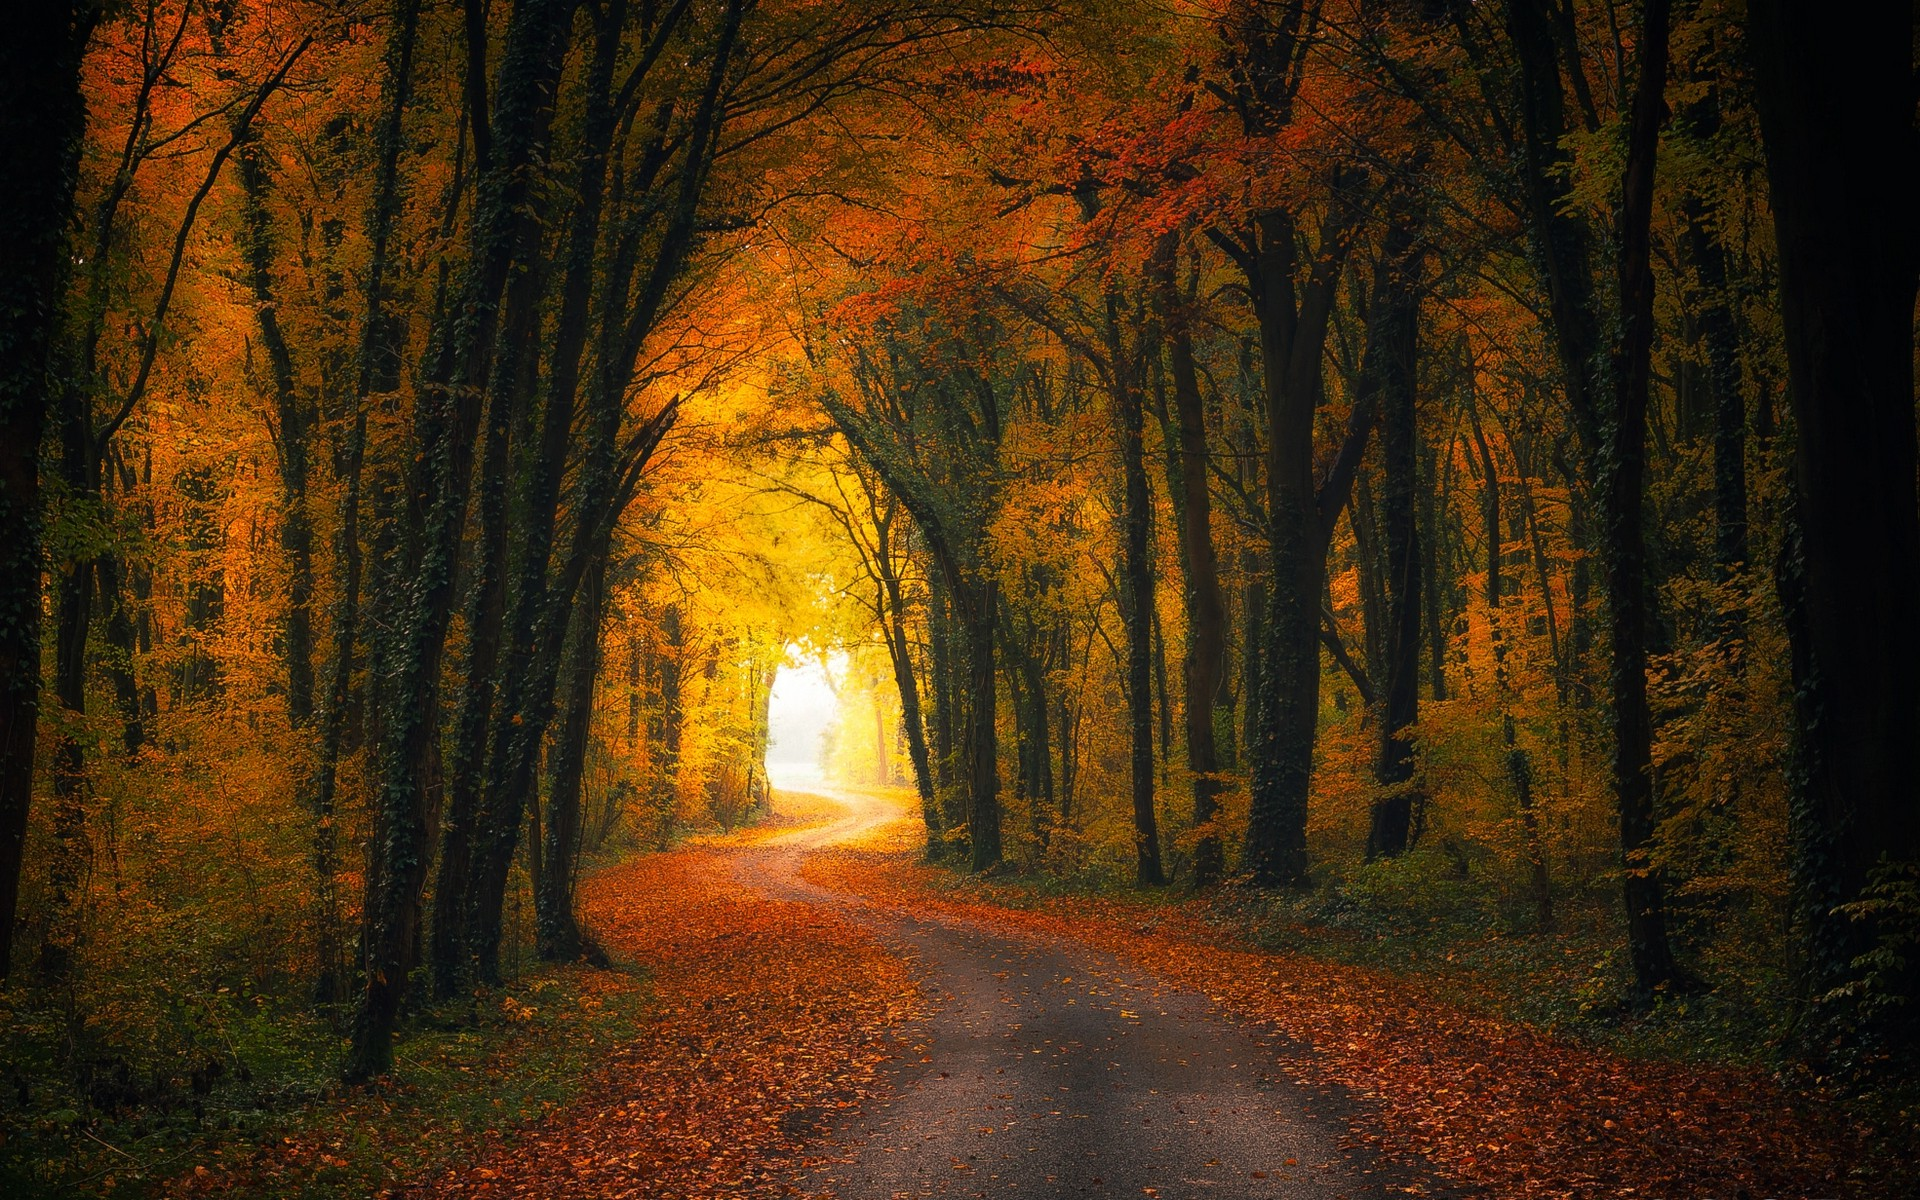 Nature Wallpaper Autumn Fall 1600x1200 Nature Landscape Fall Road Forest Leaves Shrubs